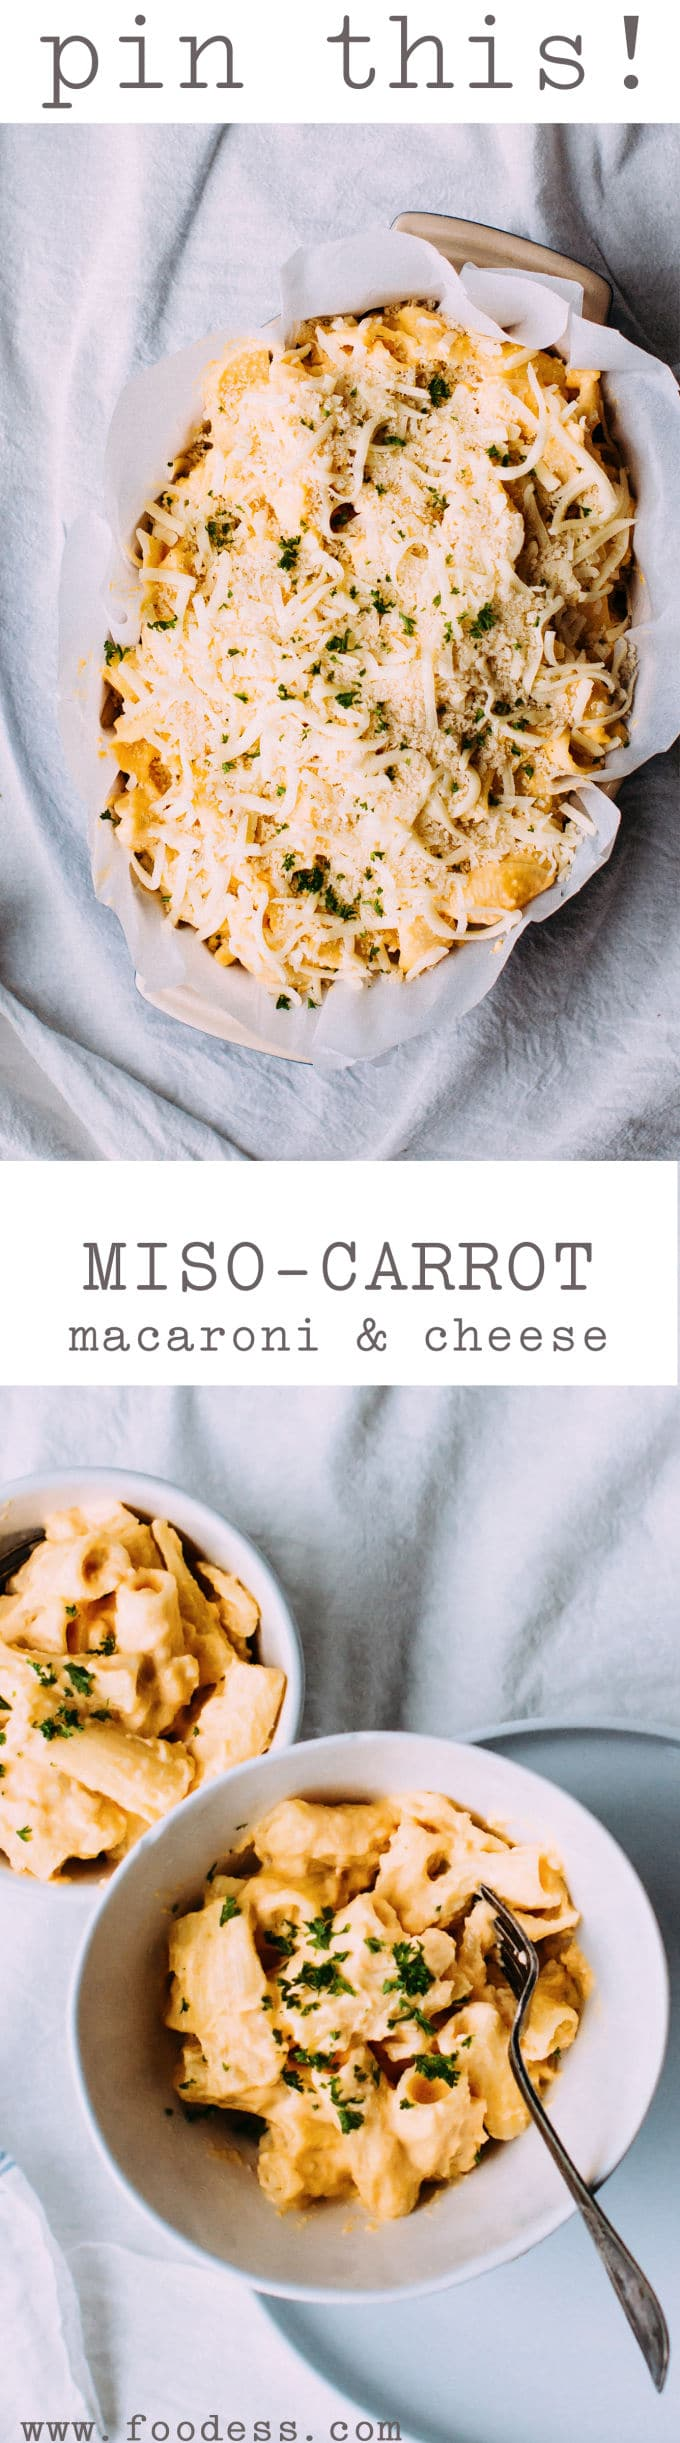 Miso-Carrot Mac & Cheese Recipe - Foodess.com